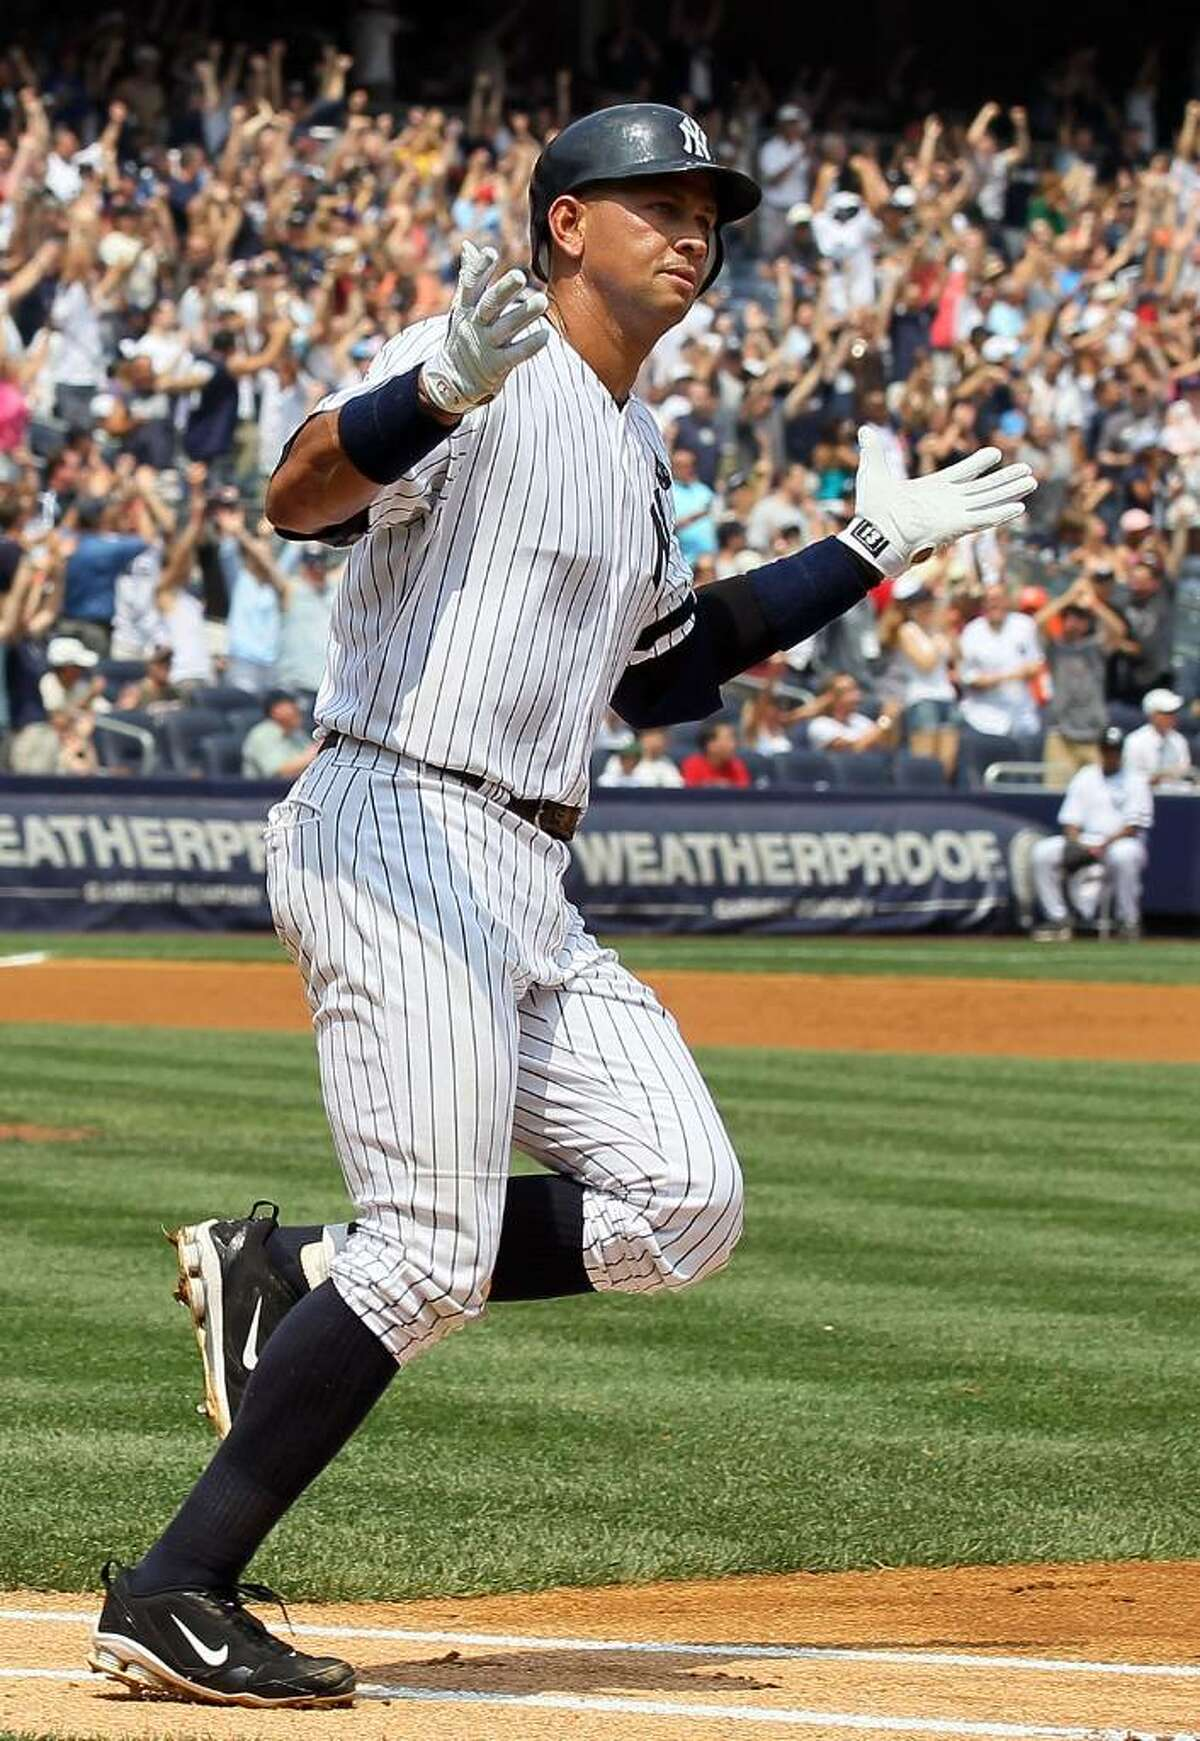 NEW YORK - AUGUST 04: Alex Rodriguez #13 of the New York Yankees runs the bases after hitting his 600th career home run in the first inning against Shaun Marcum #28 (not pictured) of the Toronto Blue Jays on August 4, 2010 at Yankee Stadium in the Bronx borough of New York City. (Photo by Jim McIsaac/Getty Images) *** Local Caption *** Alex Rodriguez